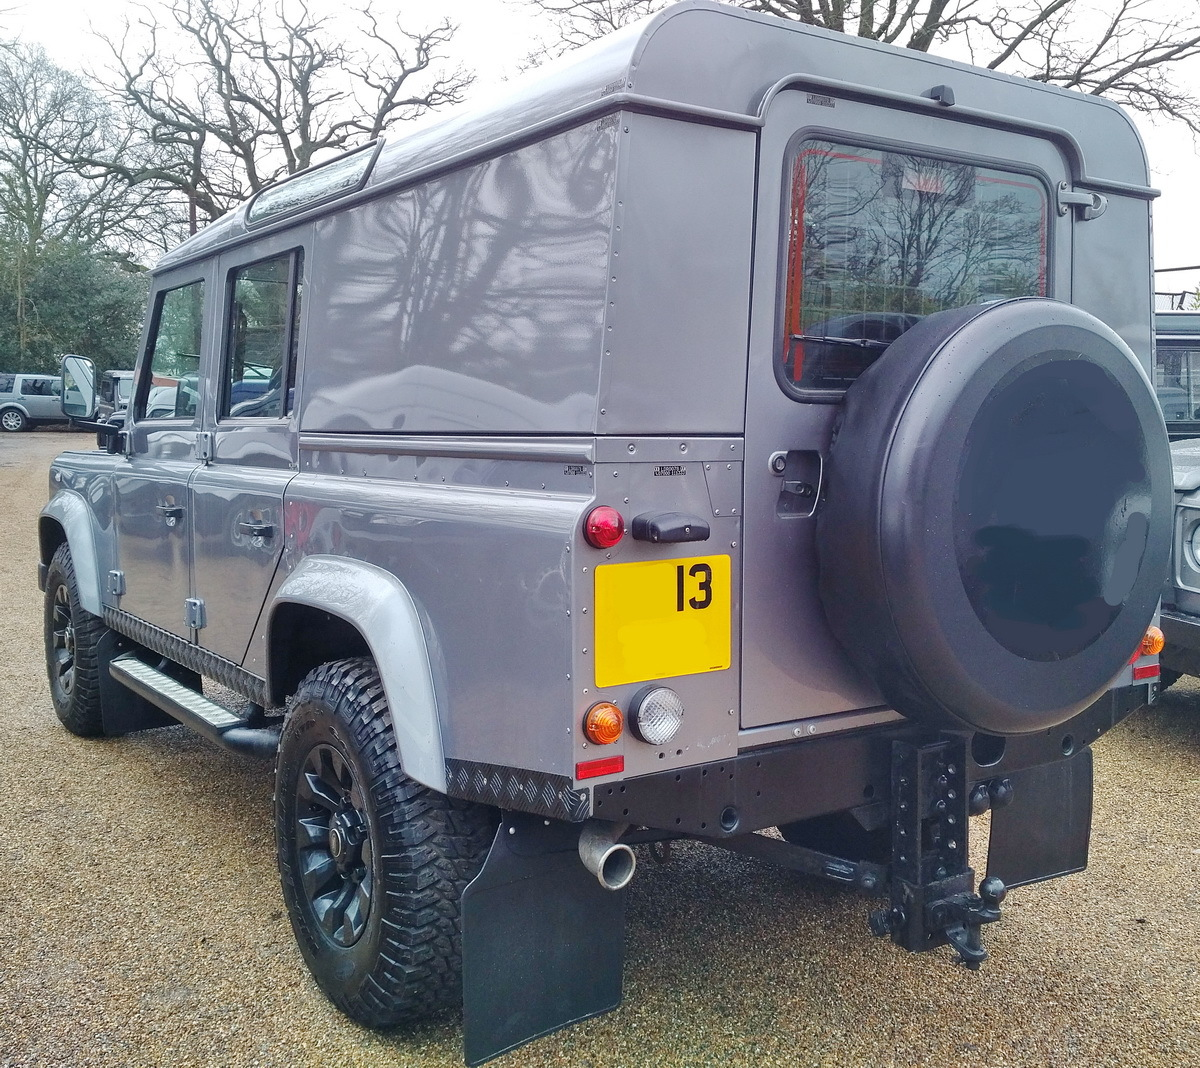 Defender2 Net View Topic An Anoraks Utility Station Wagon